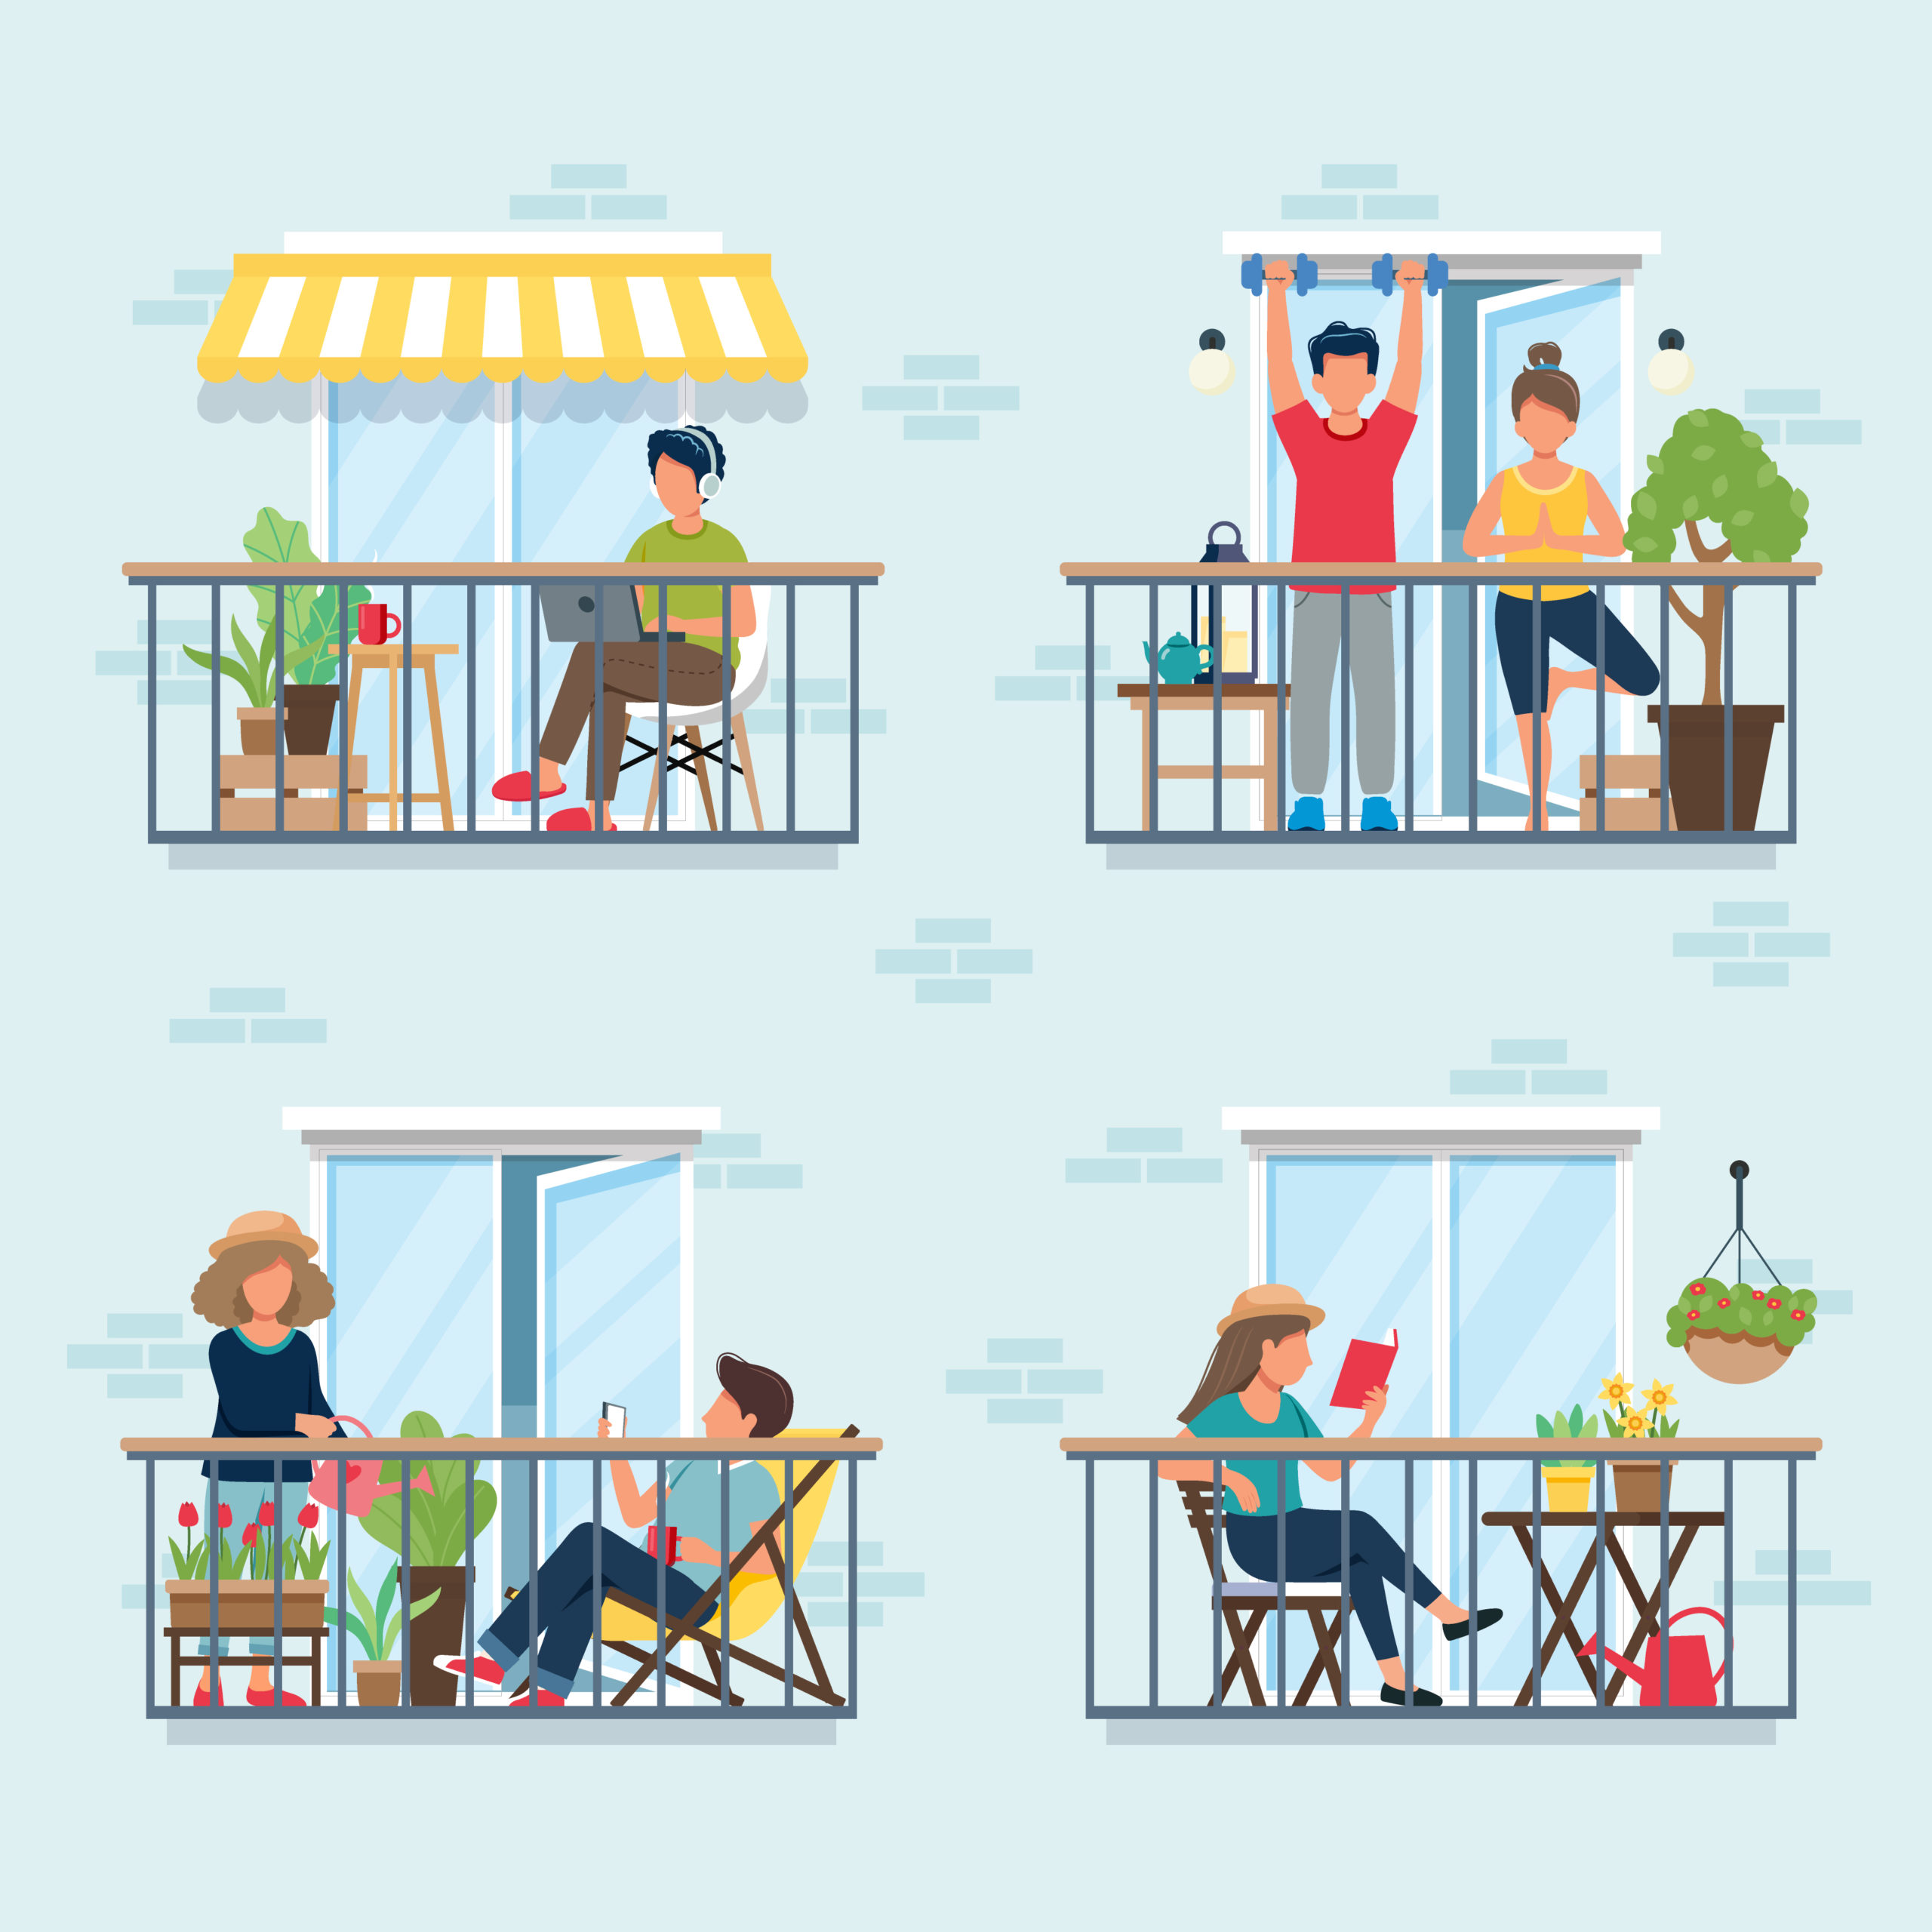 People on balcony, social isolation concept. Stay at home during epidemic._ ambuja Blog